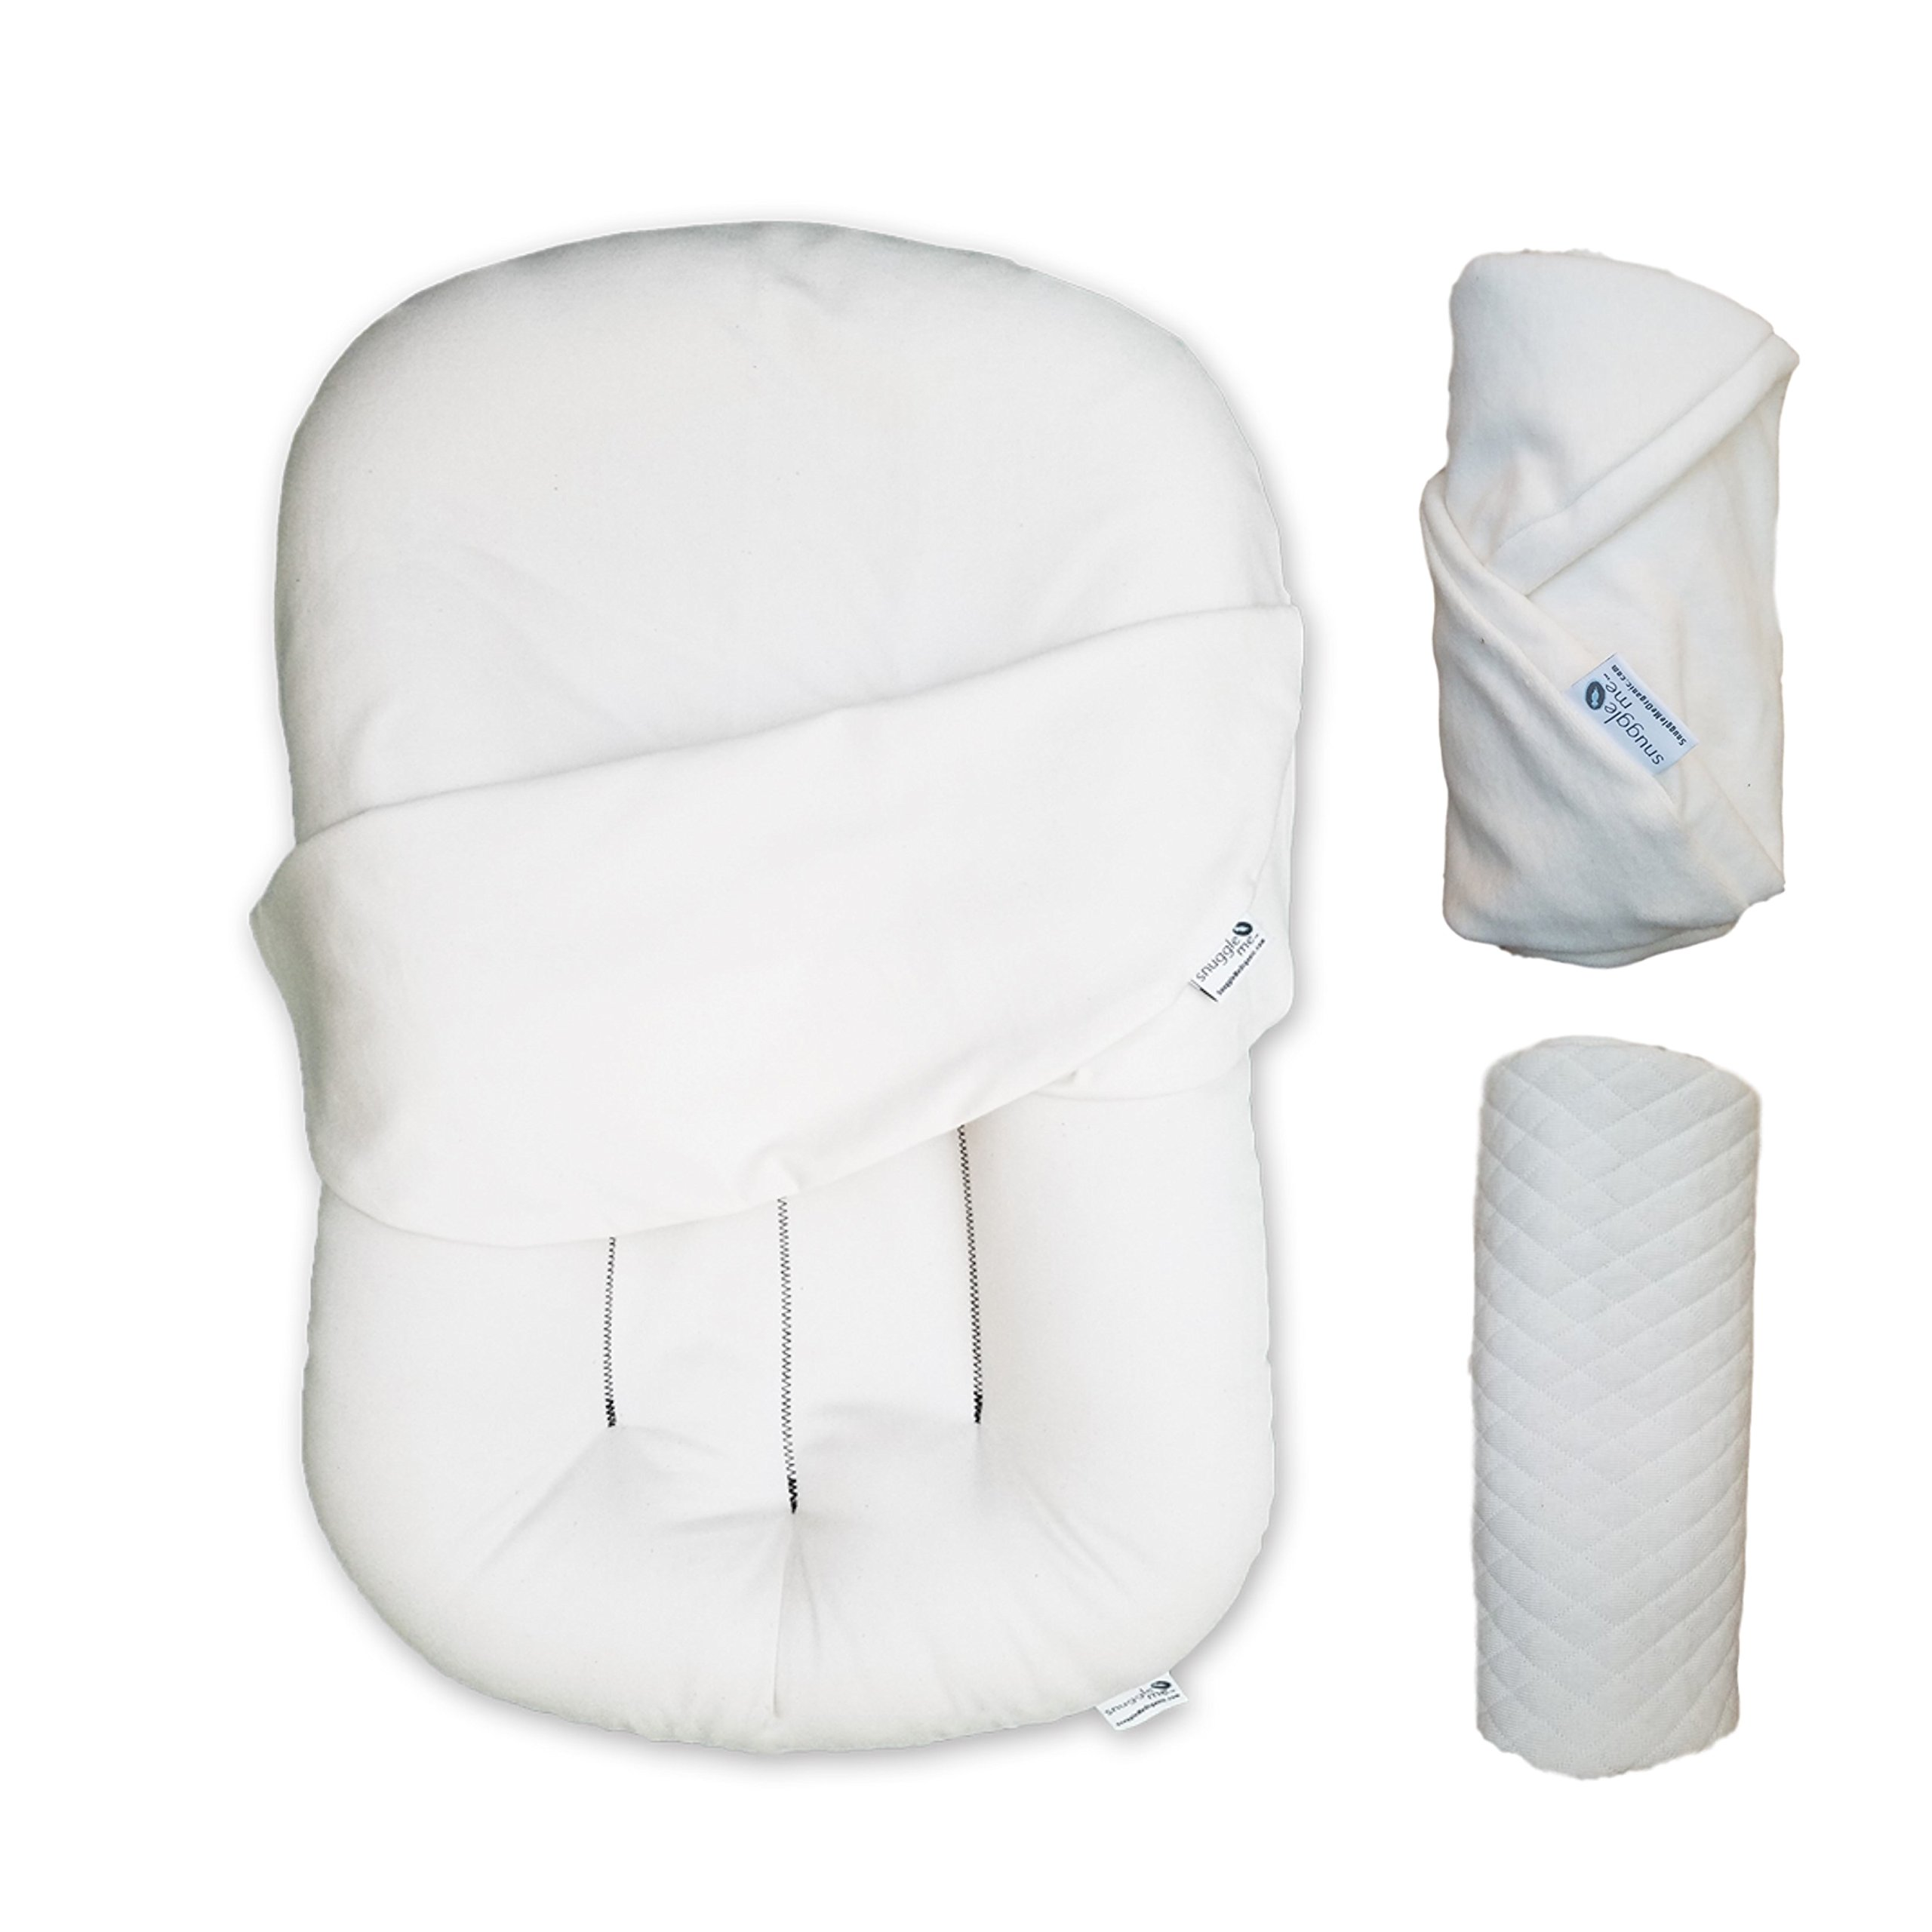 ULTIMATE BABY CARE PACKAGE Snuggle Me Organic Cosleeping Bed Infant Lounger. 4PCS (Ivory)